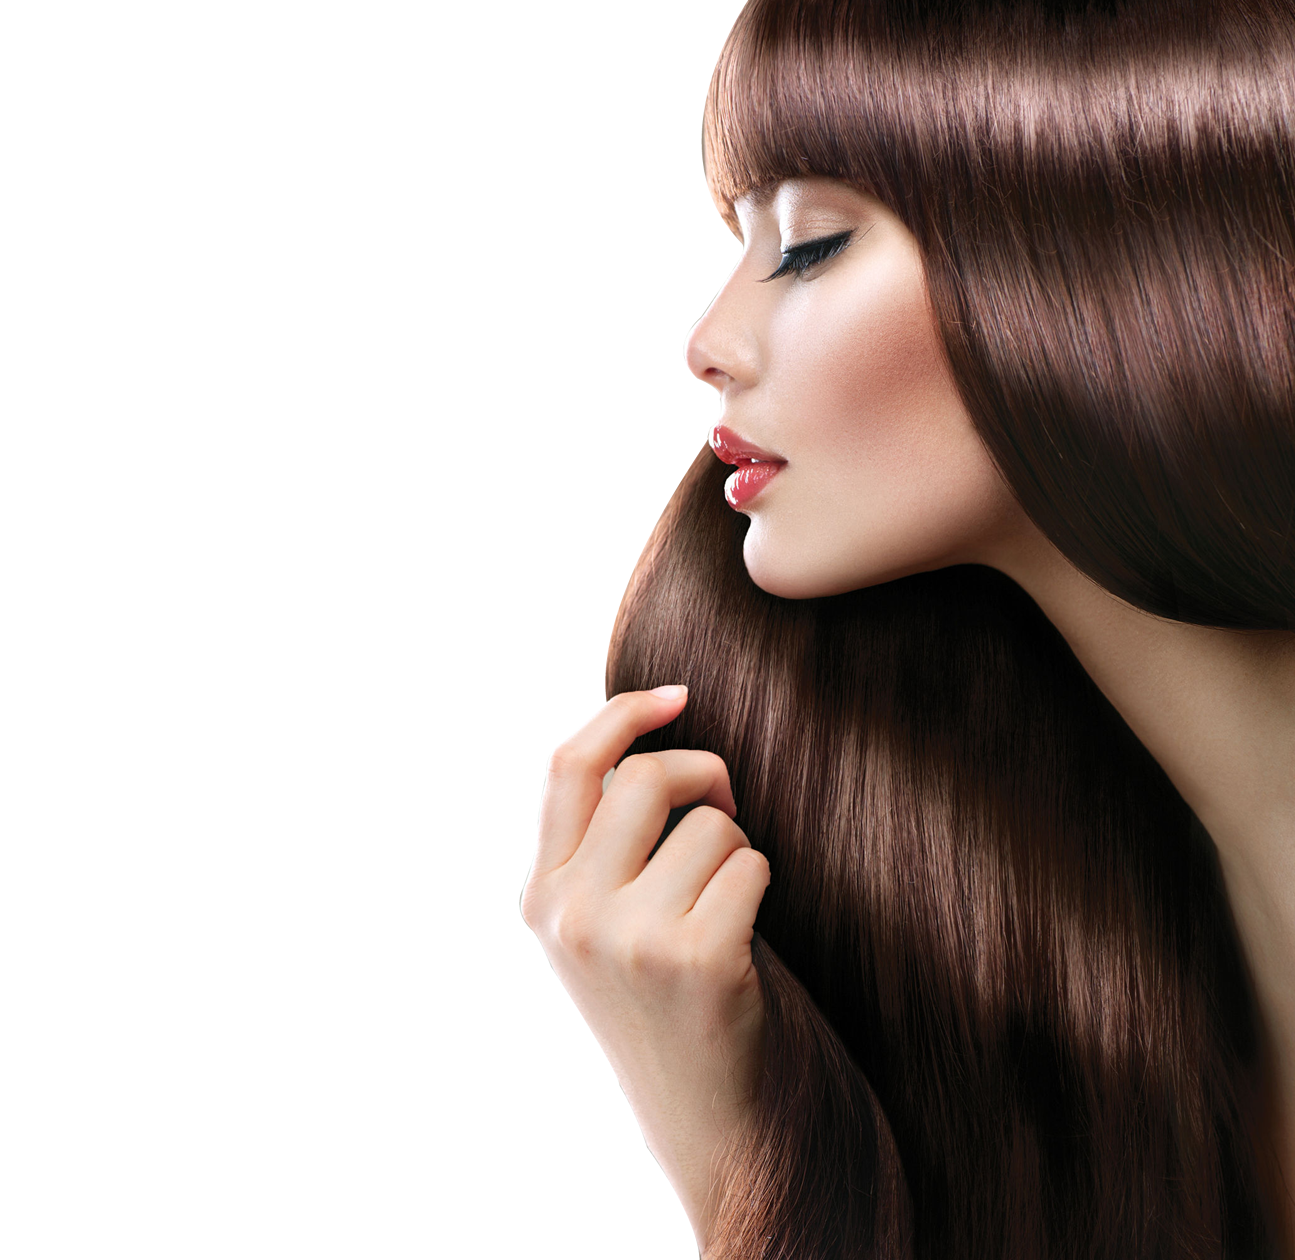 Hair Salon Png - Hair Salon PNG HD Transparent Hair Salon HD.PNG Images. | PlusPNG